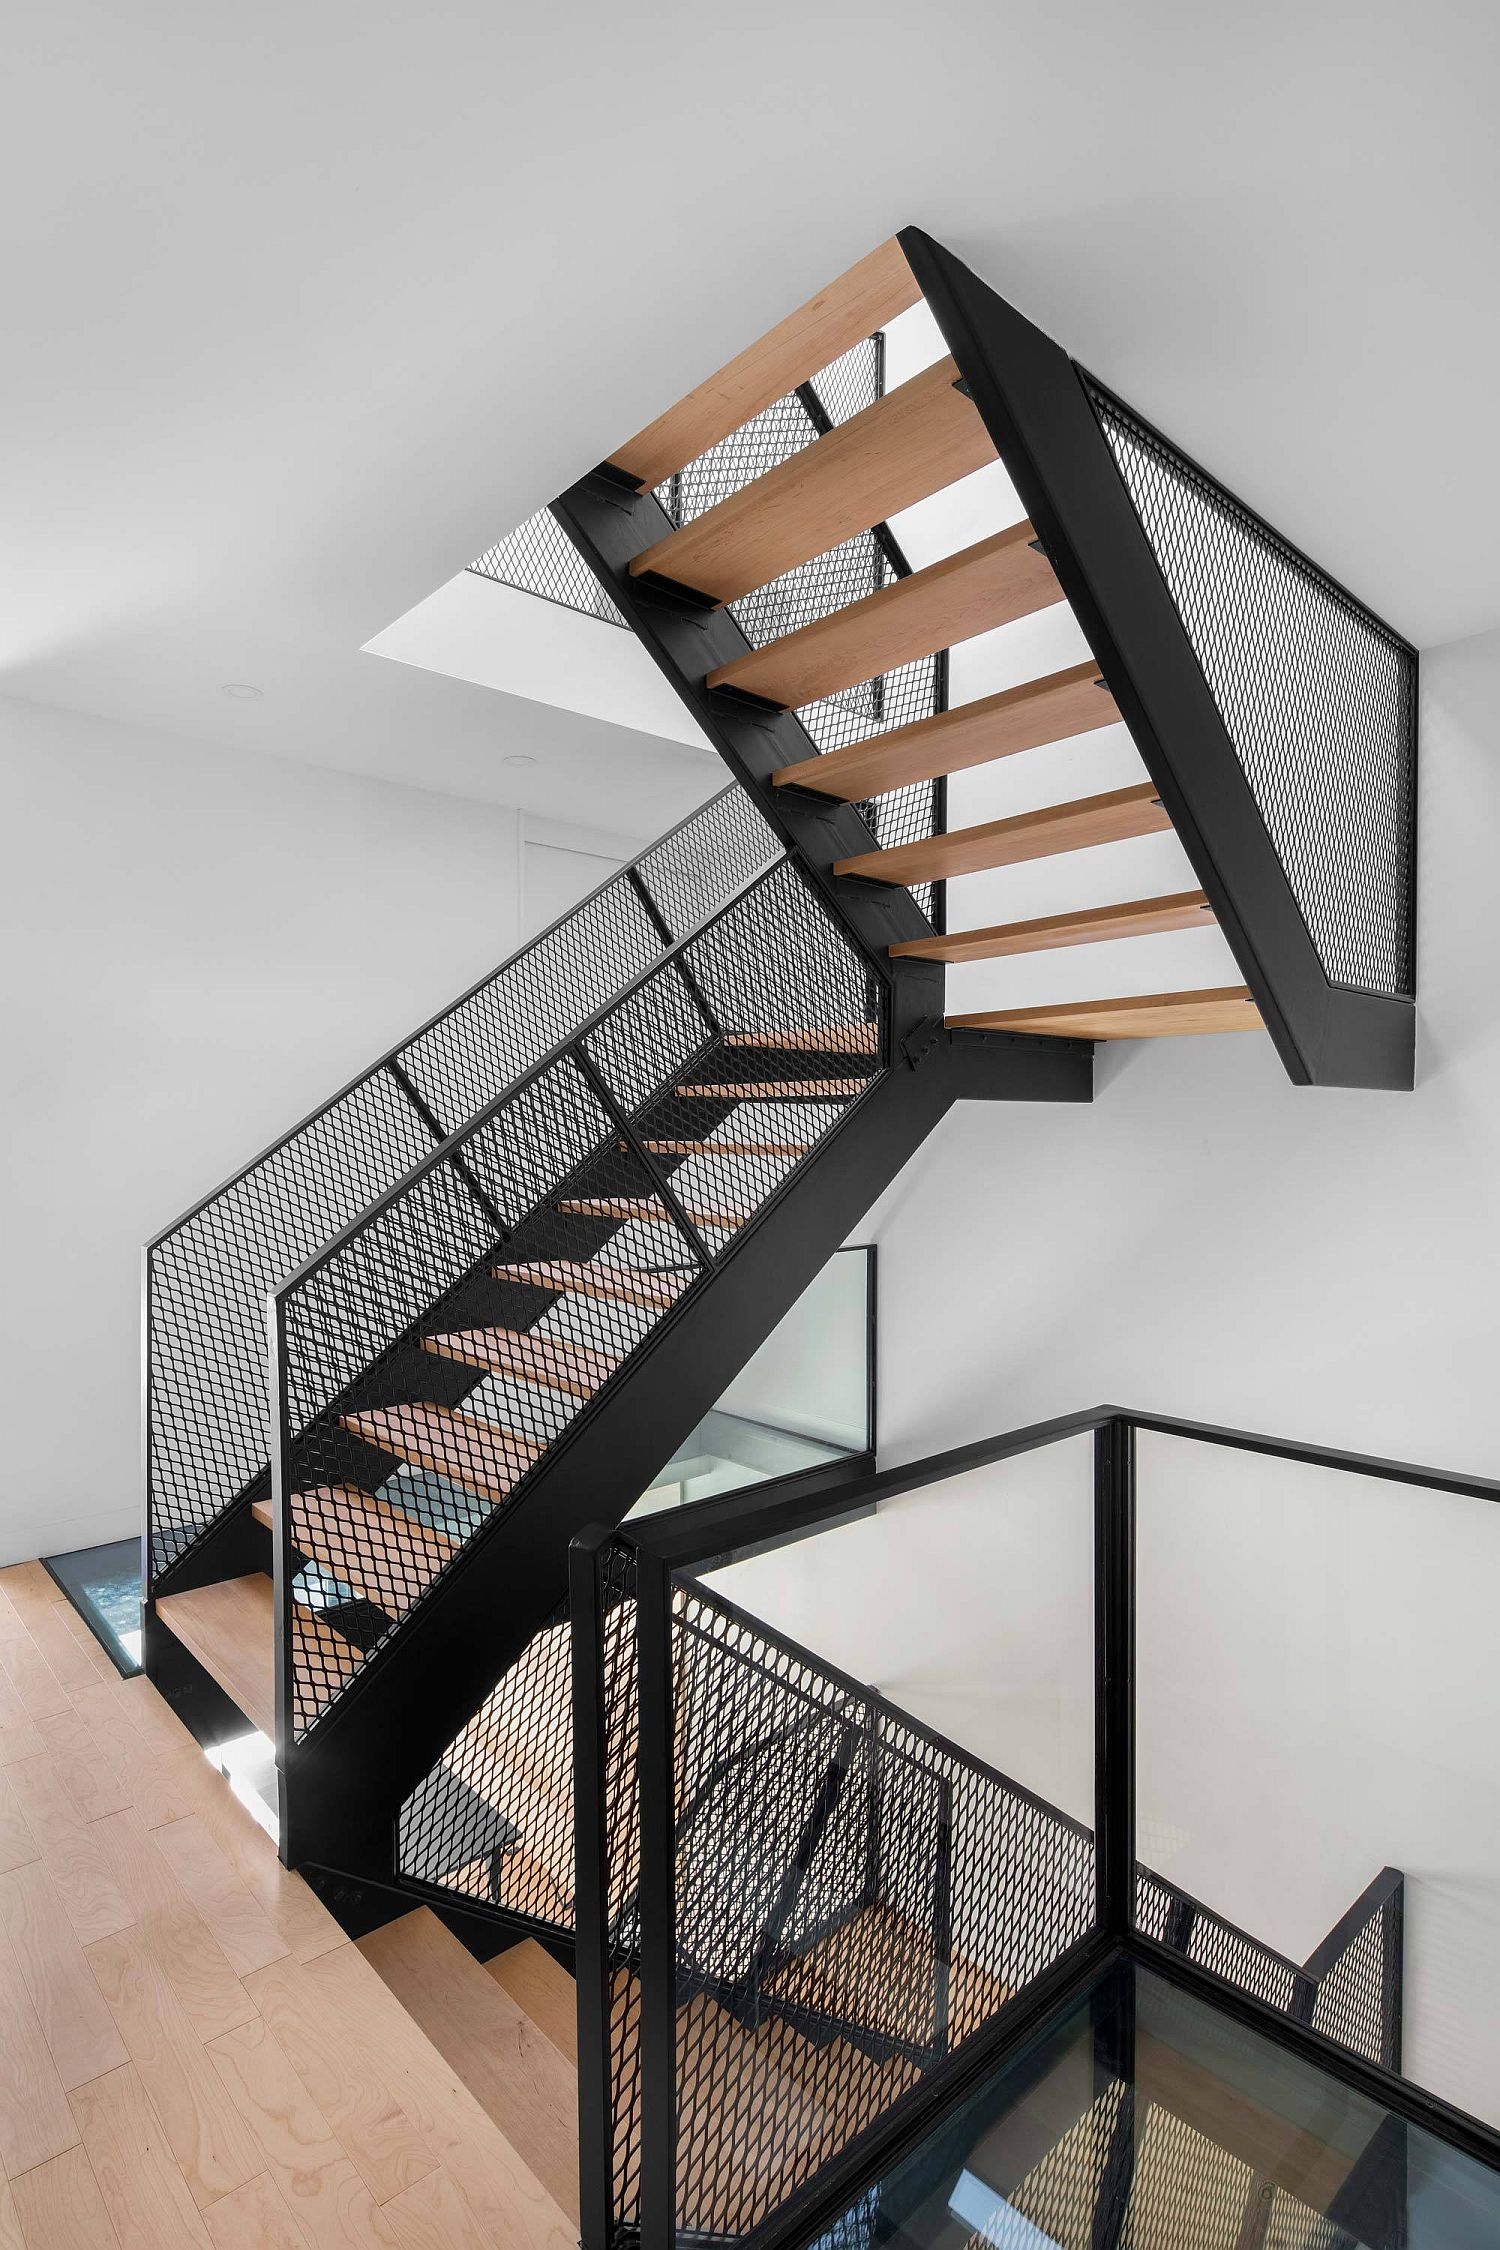 Metallic mesh and wood create a gorgeous central staircase in the house